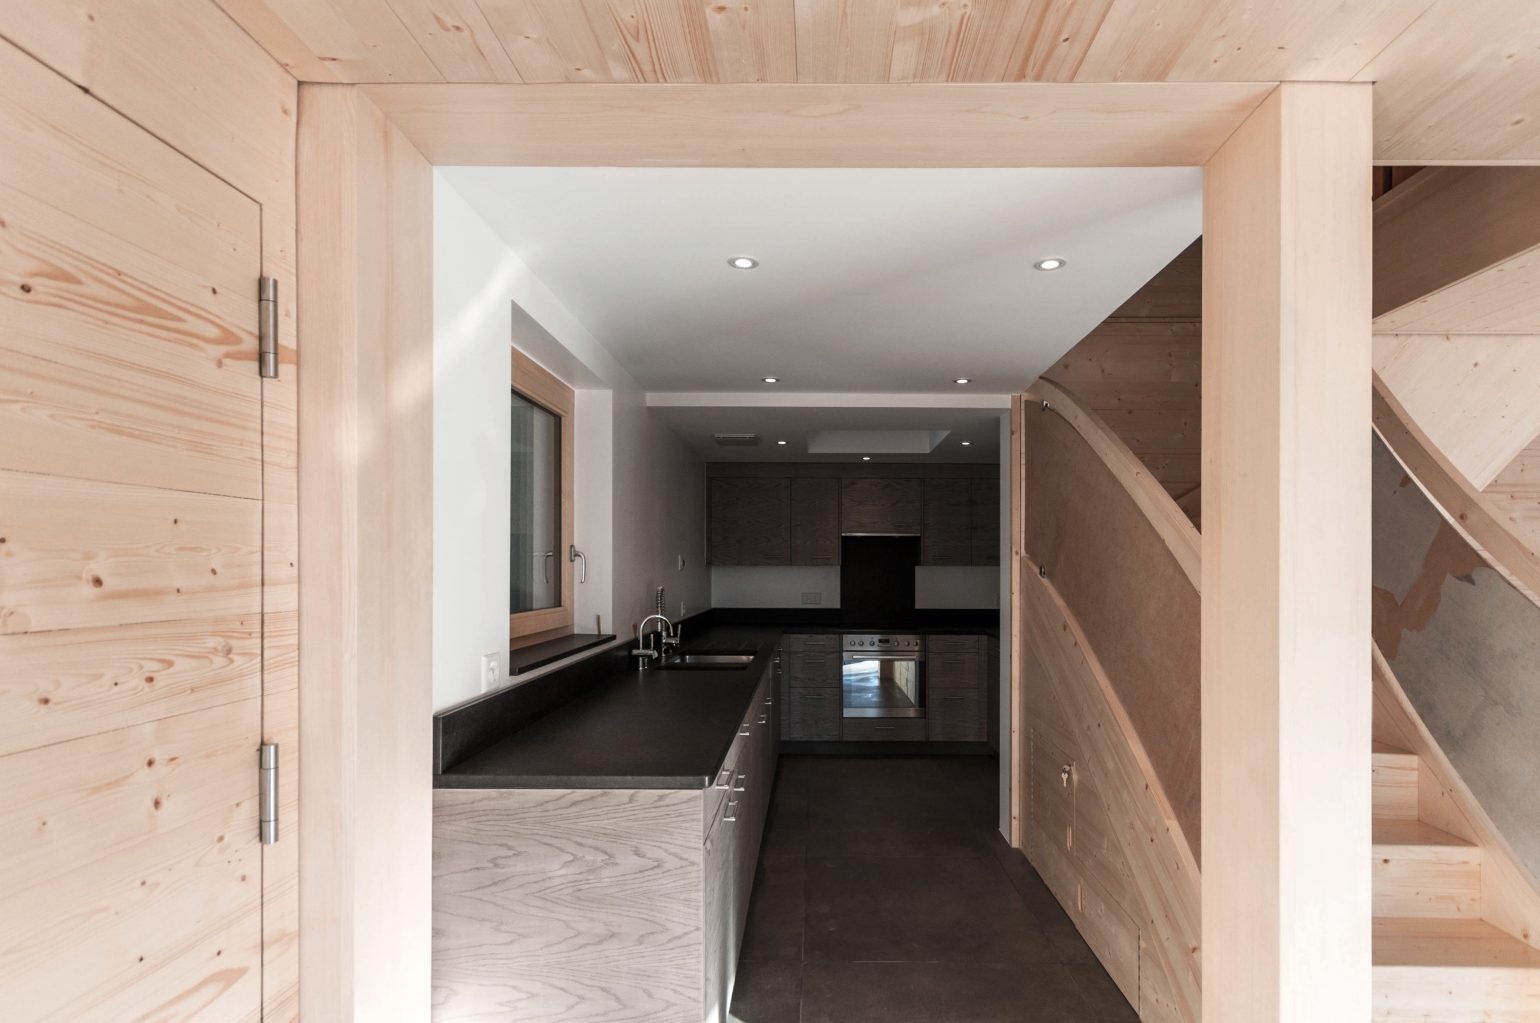 transformation-rénovation-chalet-coulon-veysonnaz-françois-meyer-architecture-sion-05